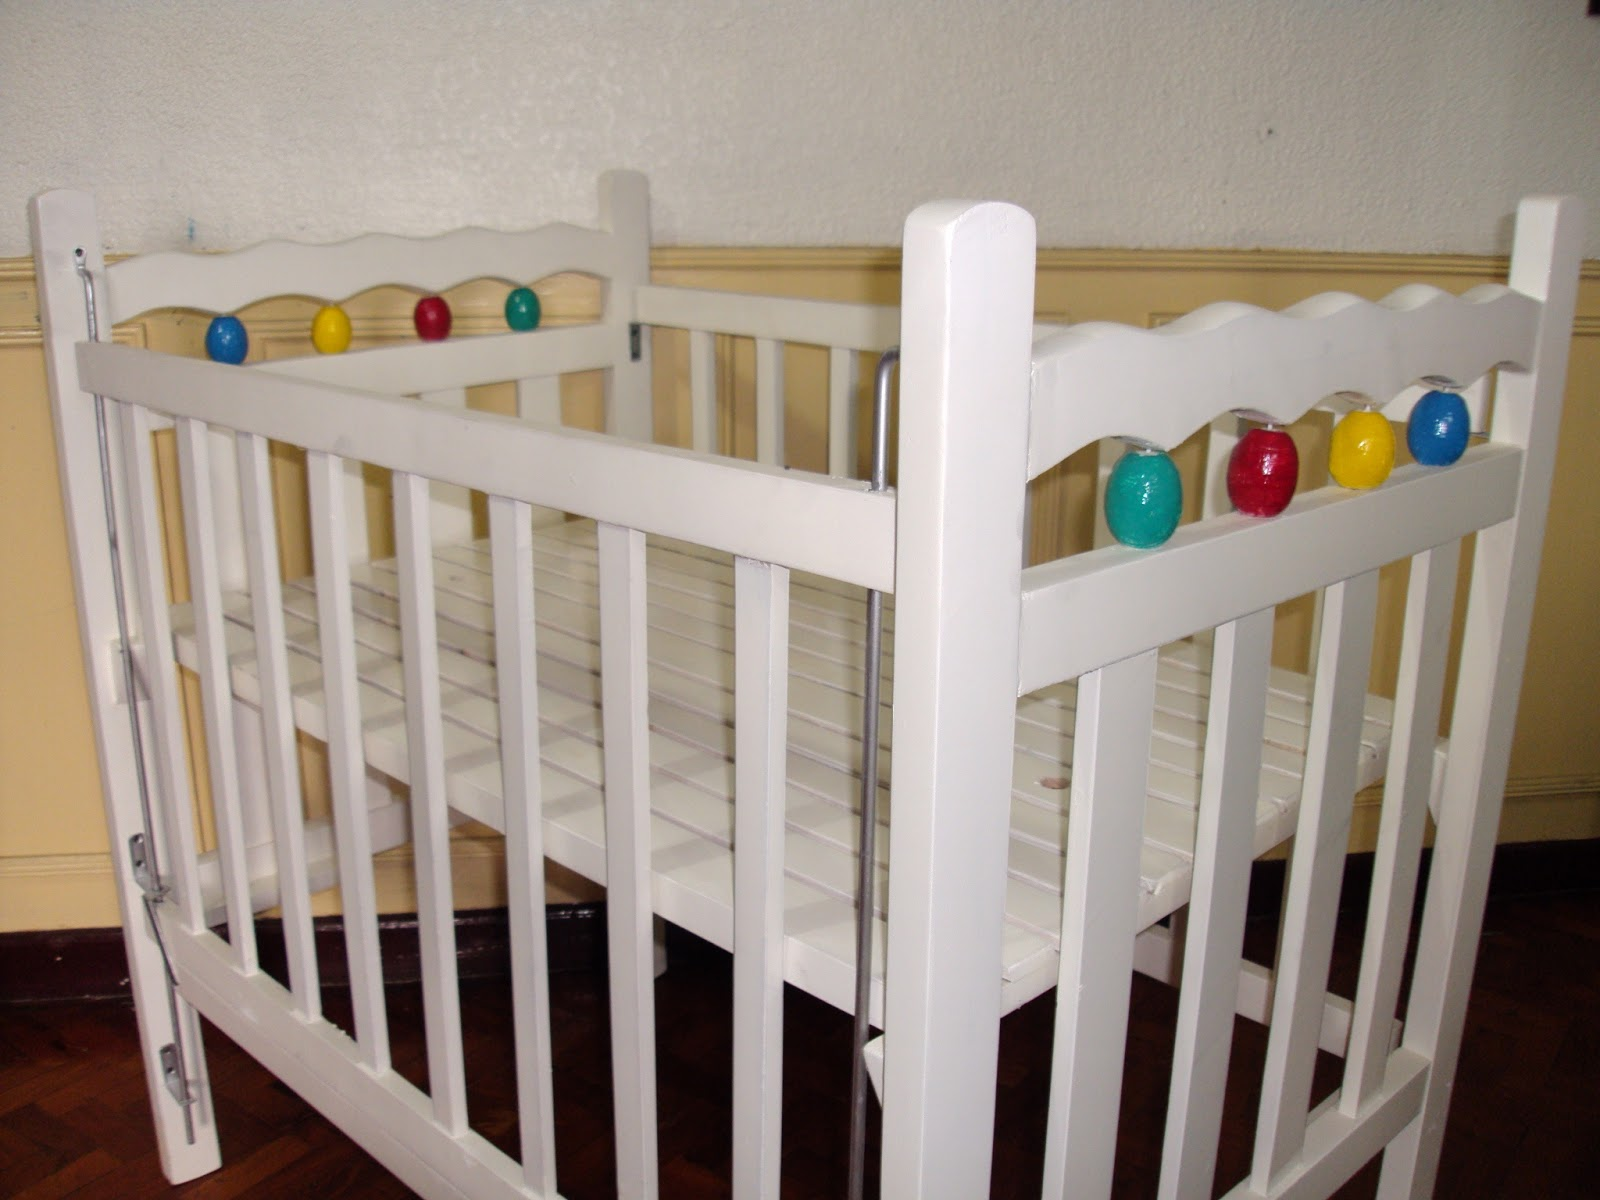 Photos of maypajo white painted frame and sta cruz unpainted frame cribs